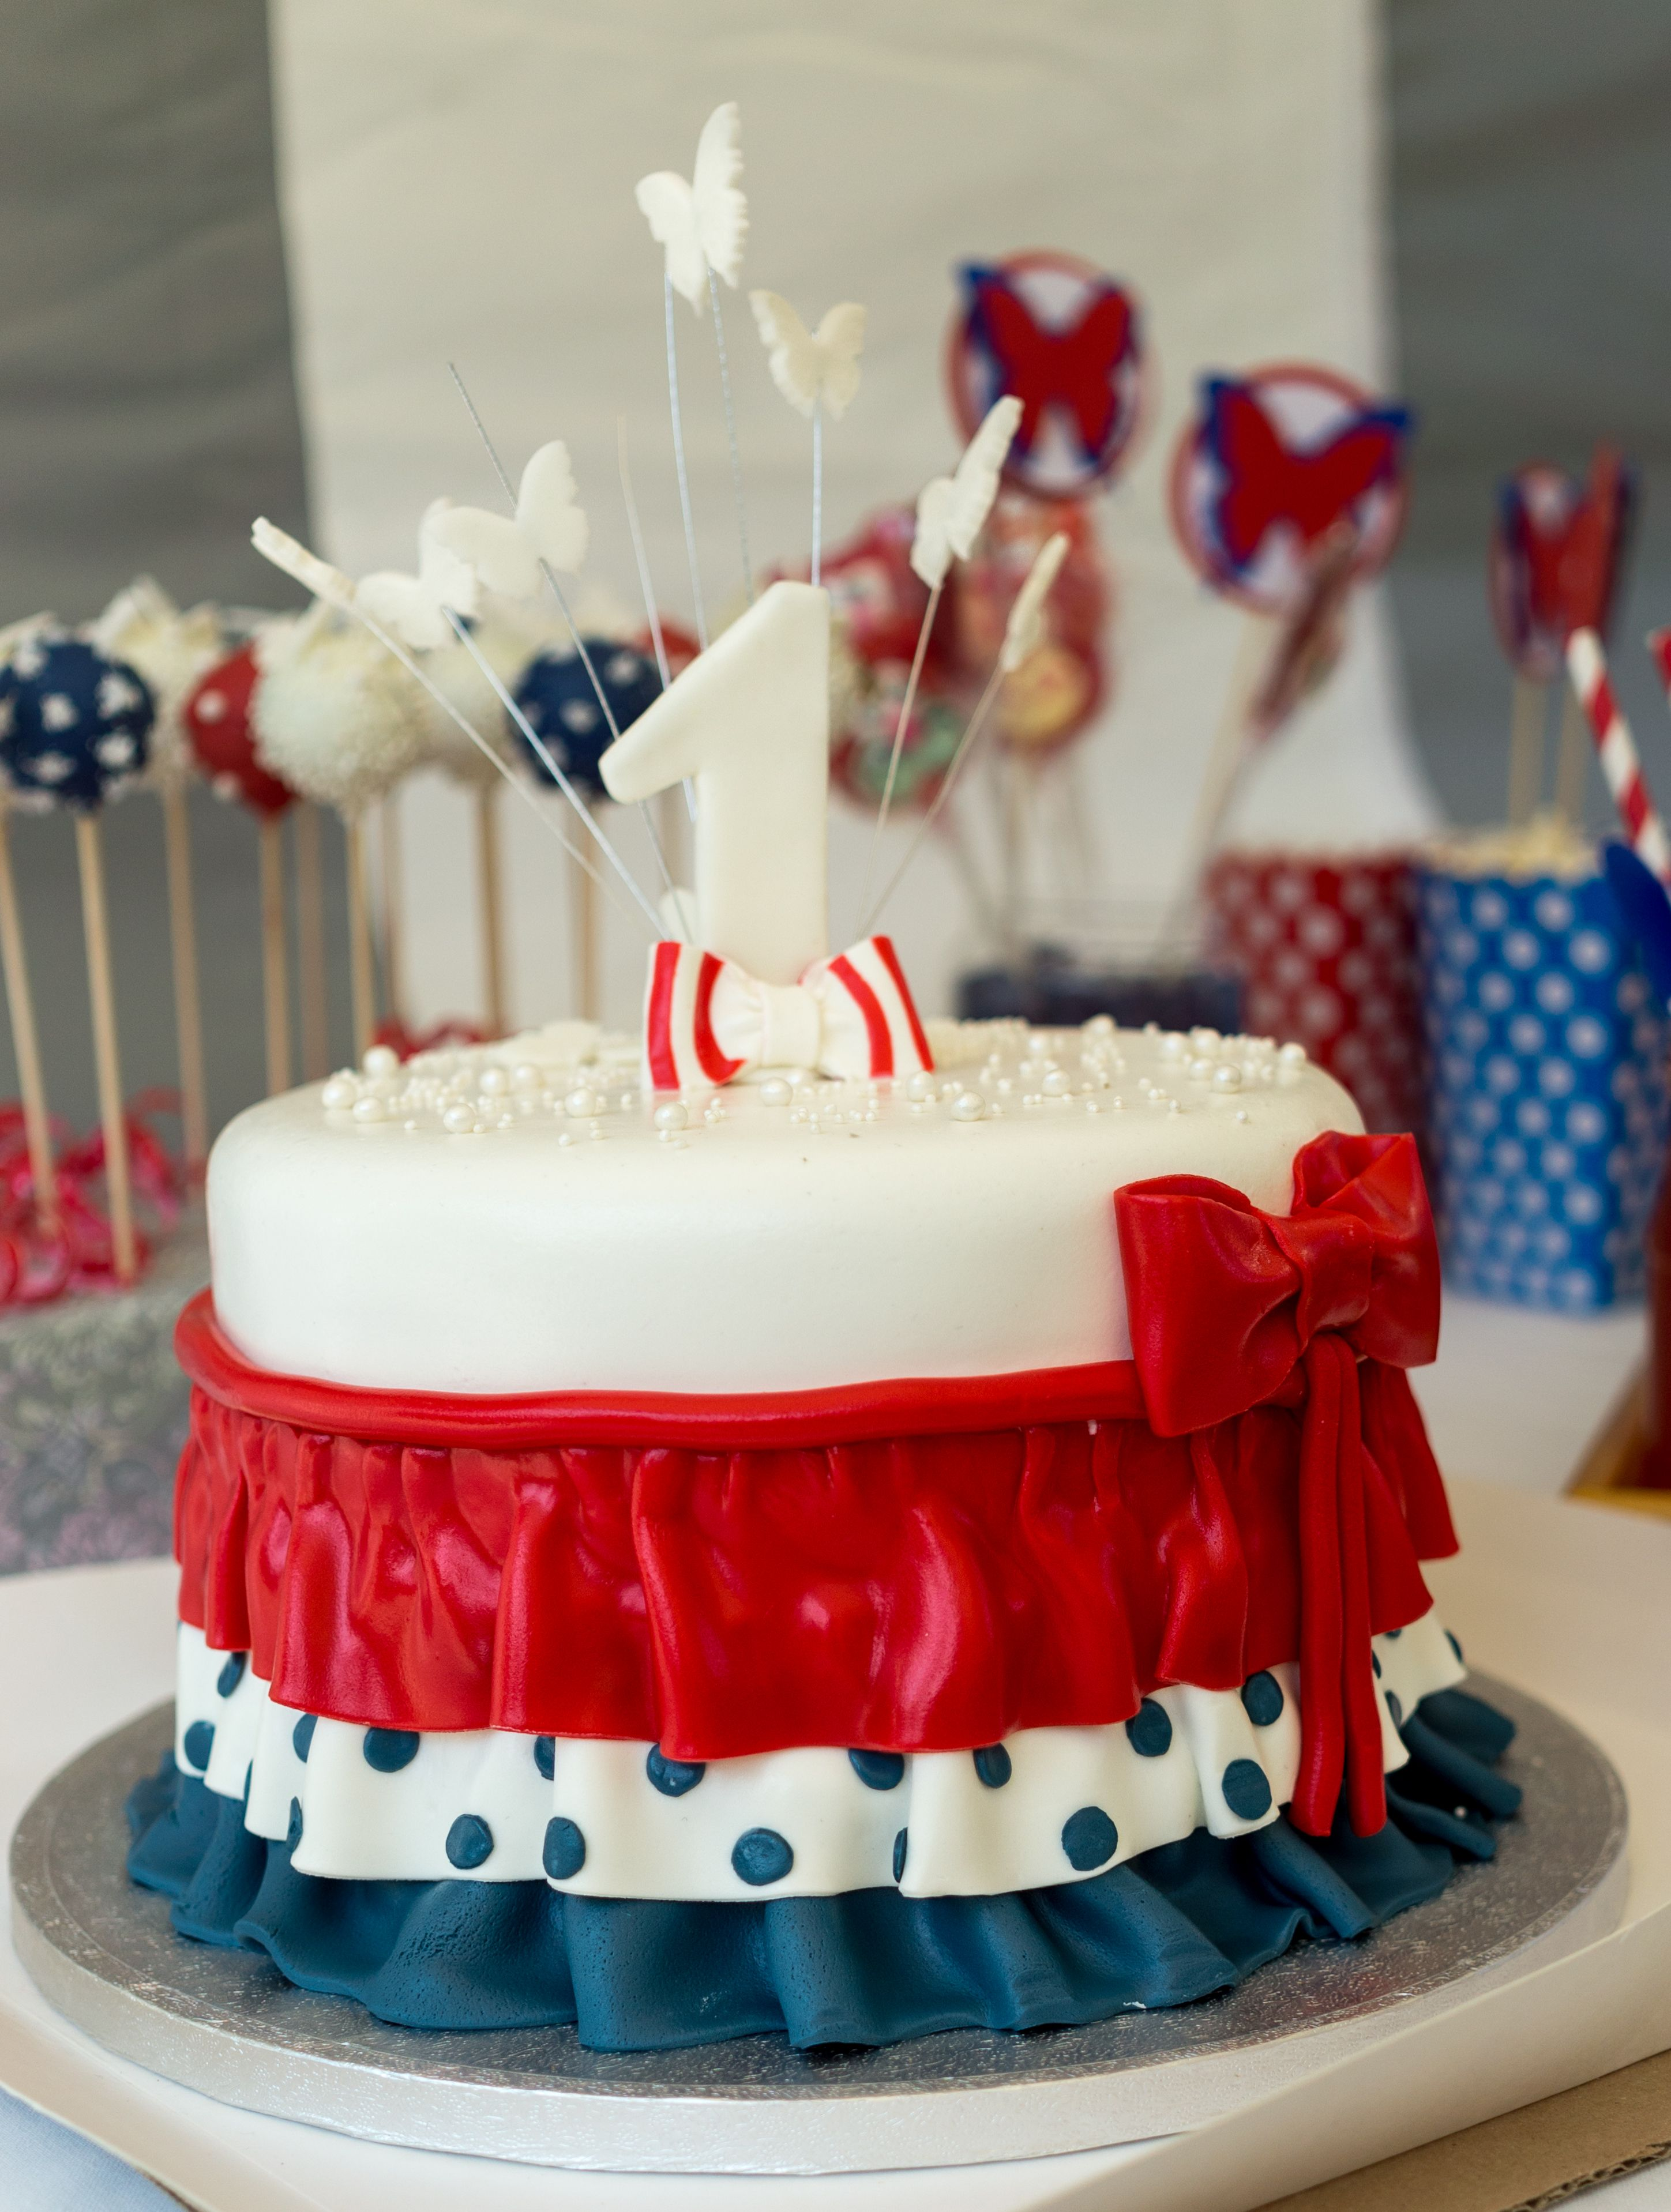 Our Daughter First Birthday Cake Red White Blue Party With